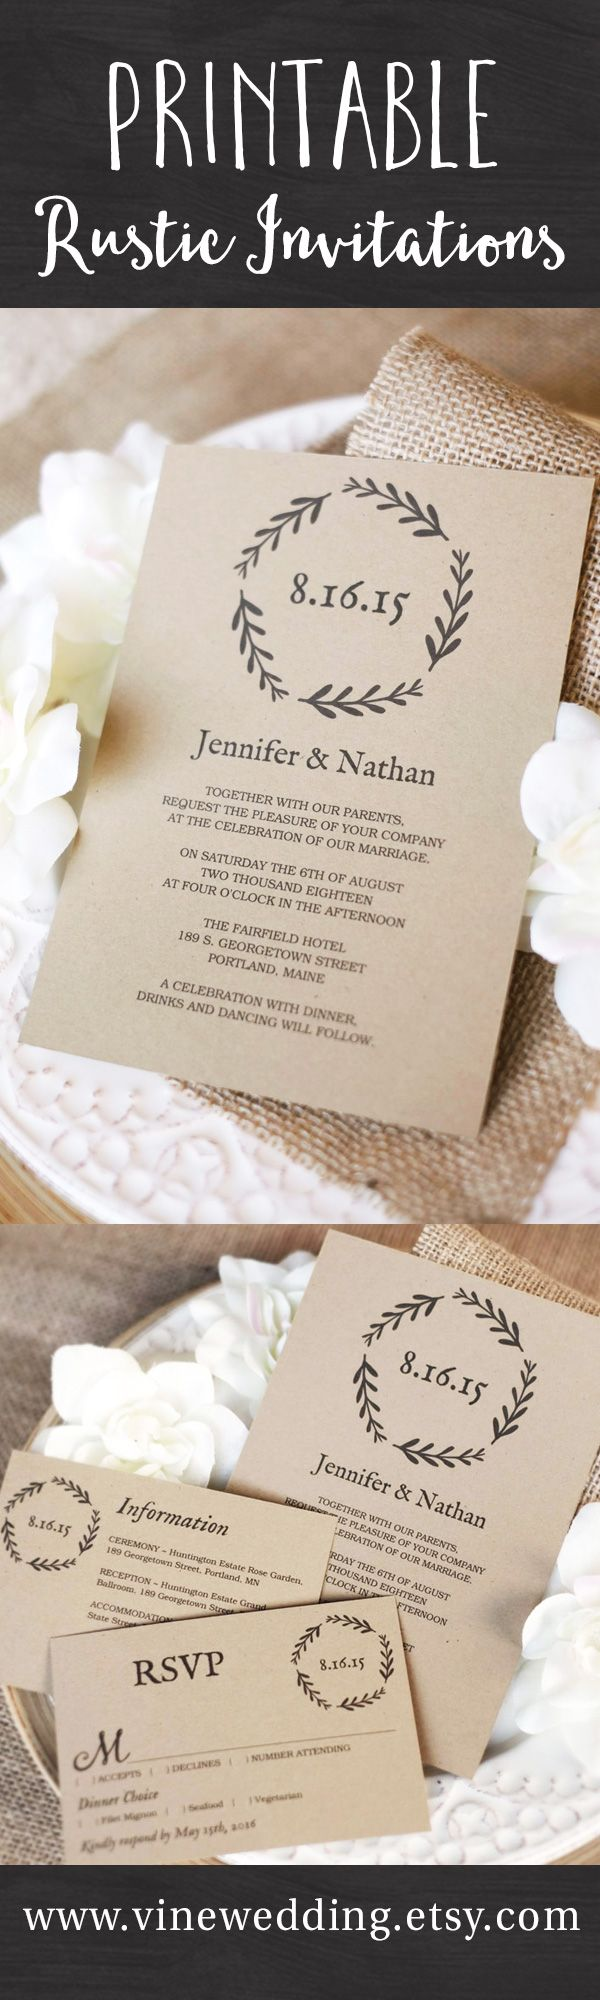 diy wedding invites rustic%0A Beautiful rustic wedding invitations  Editable instant download templates  you can print as many as you